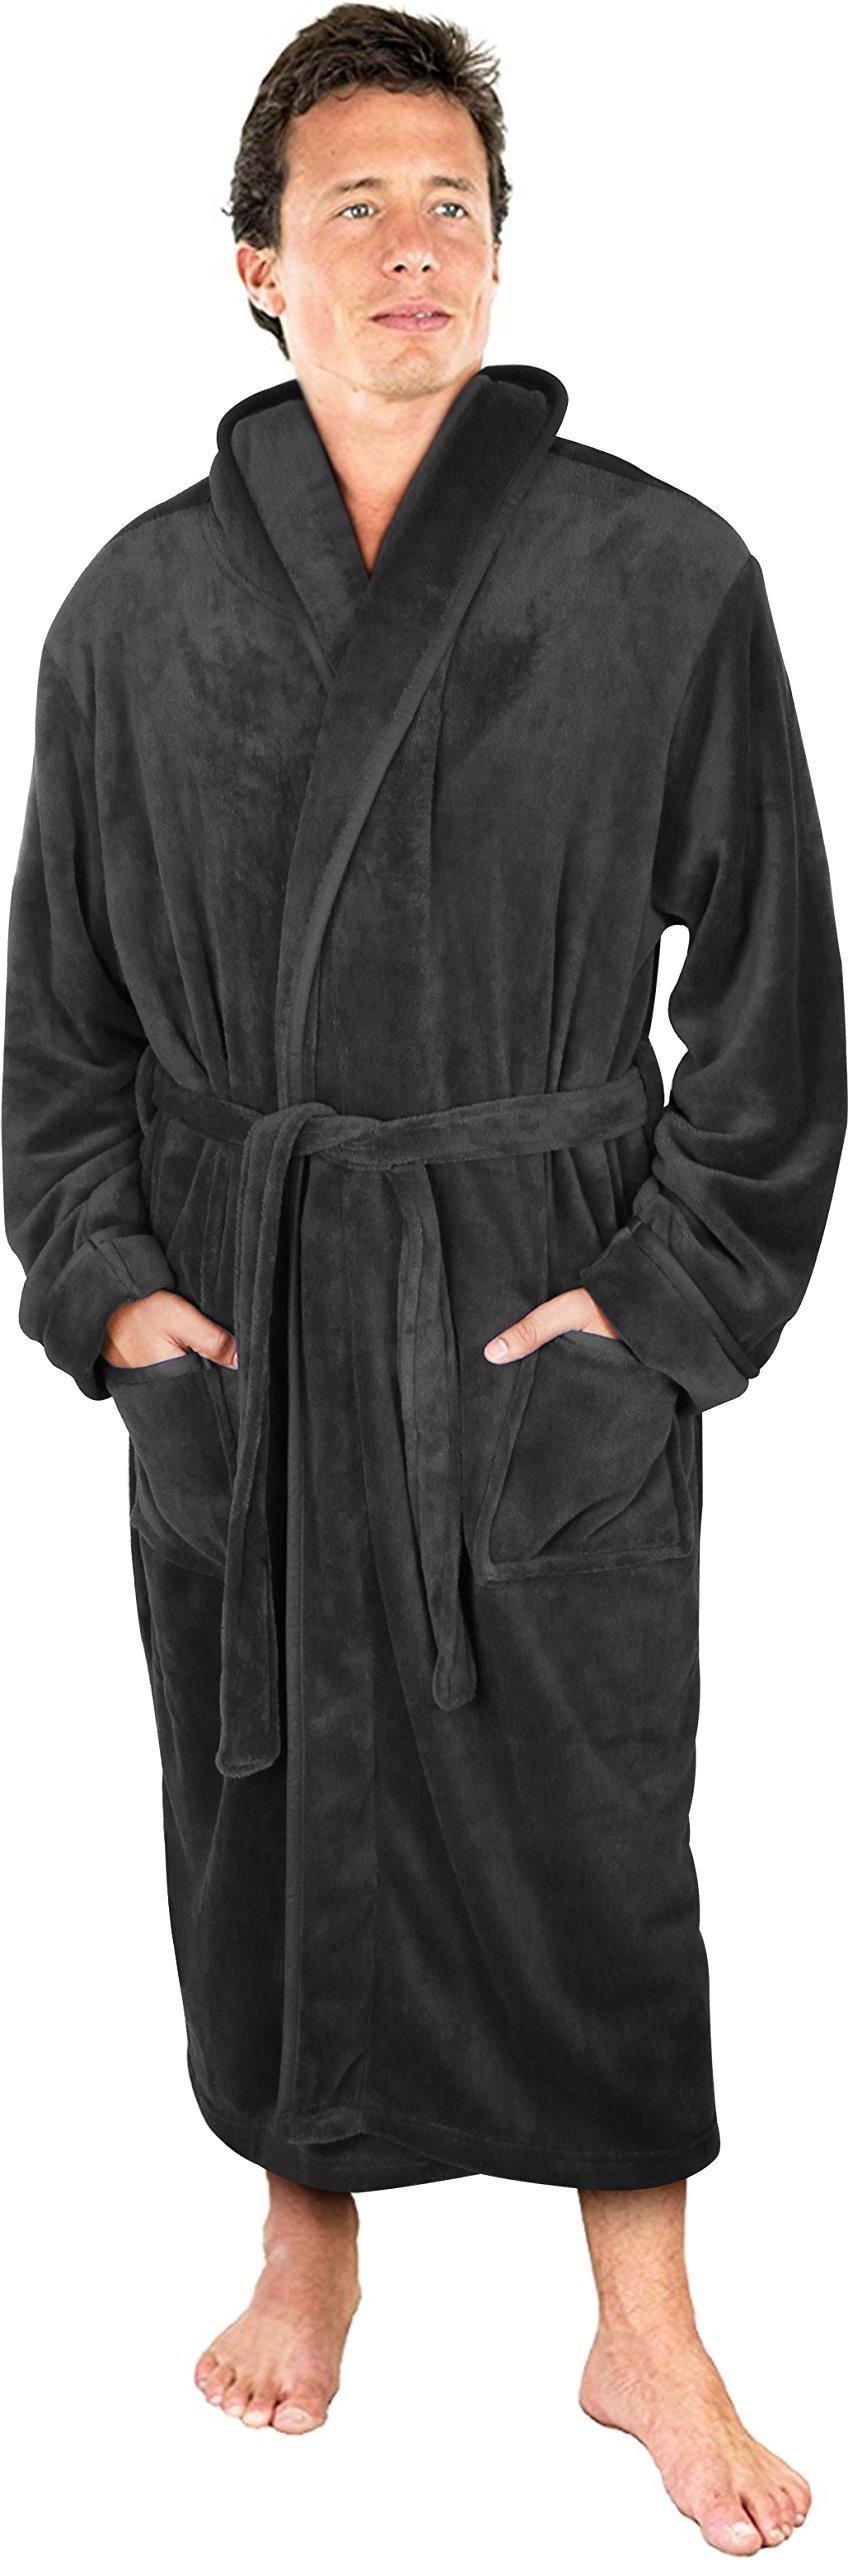 ac7ef02c64 NY Threads Luxurious Men s Shawl Collar Fleece Bathrobe Spa Robe product  image